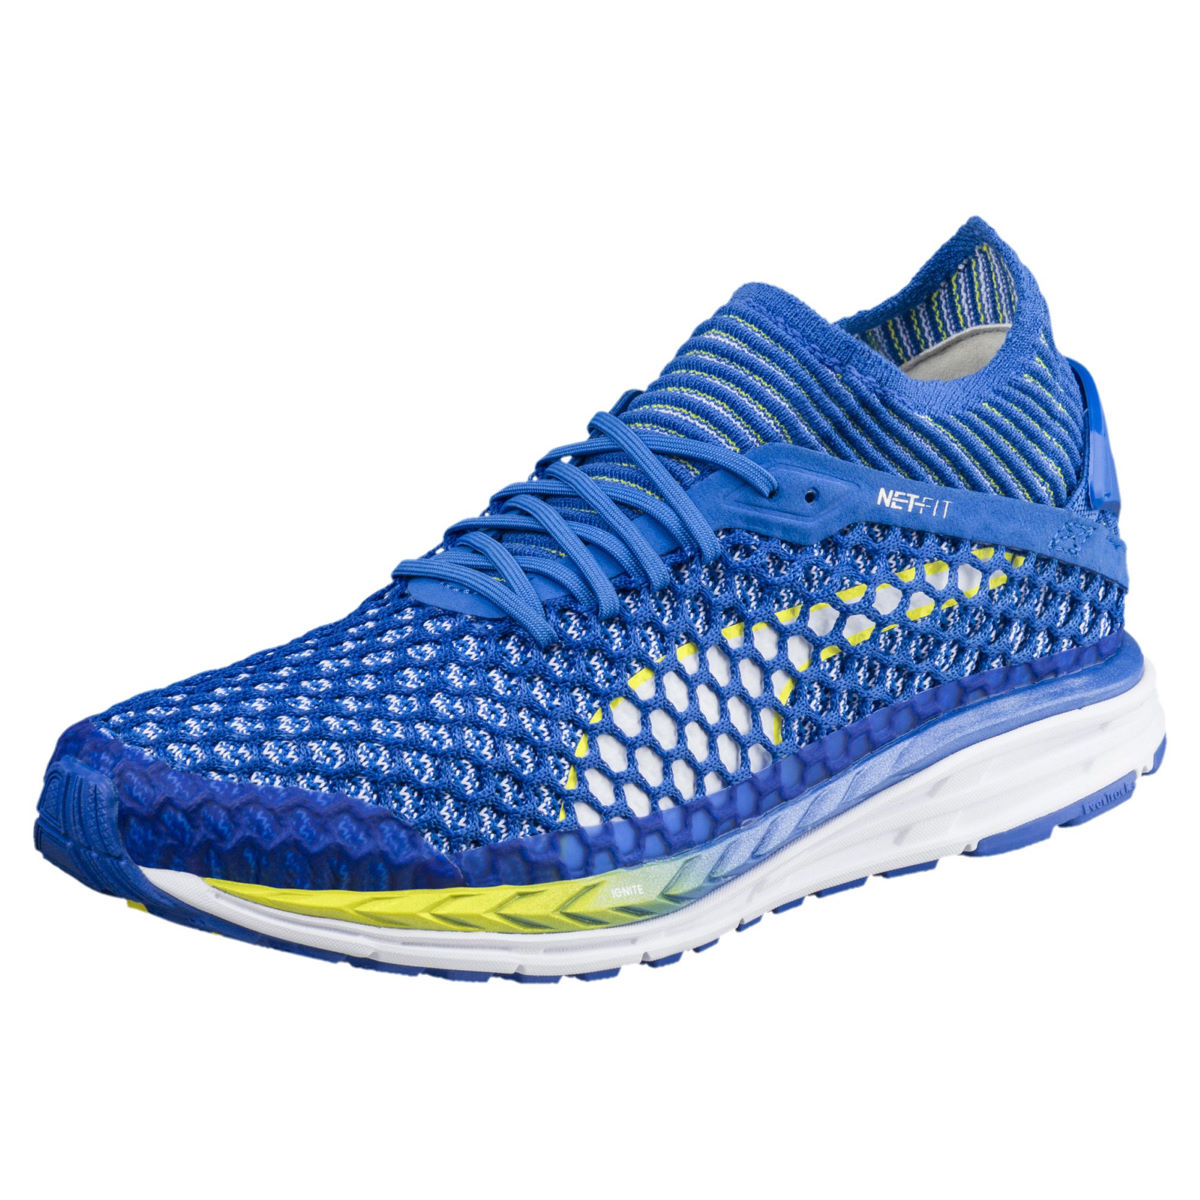 Chaussures Femme Puma Speed Ignite Netfit 2 - UK 7 blue-lemon-white